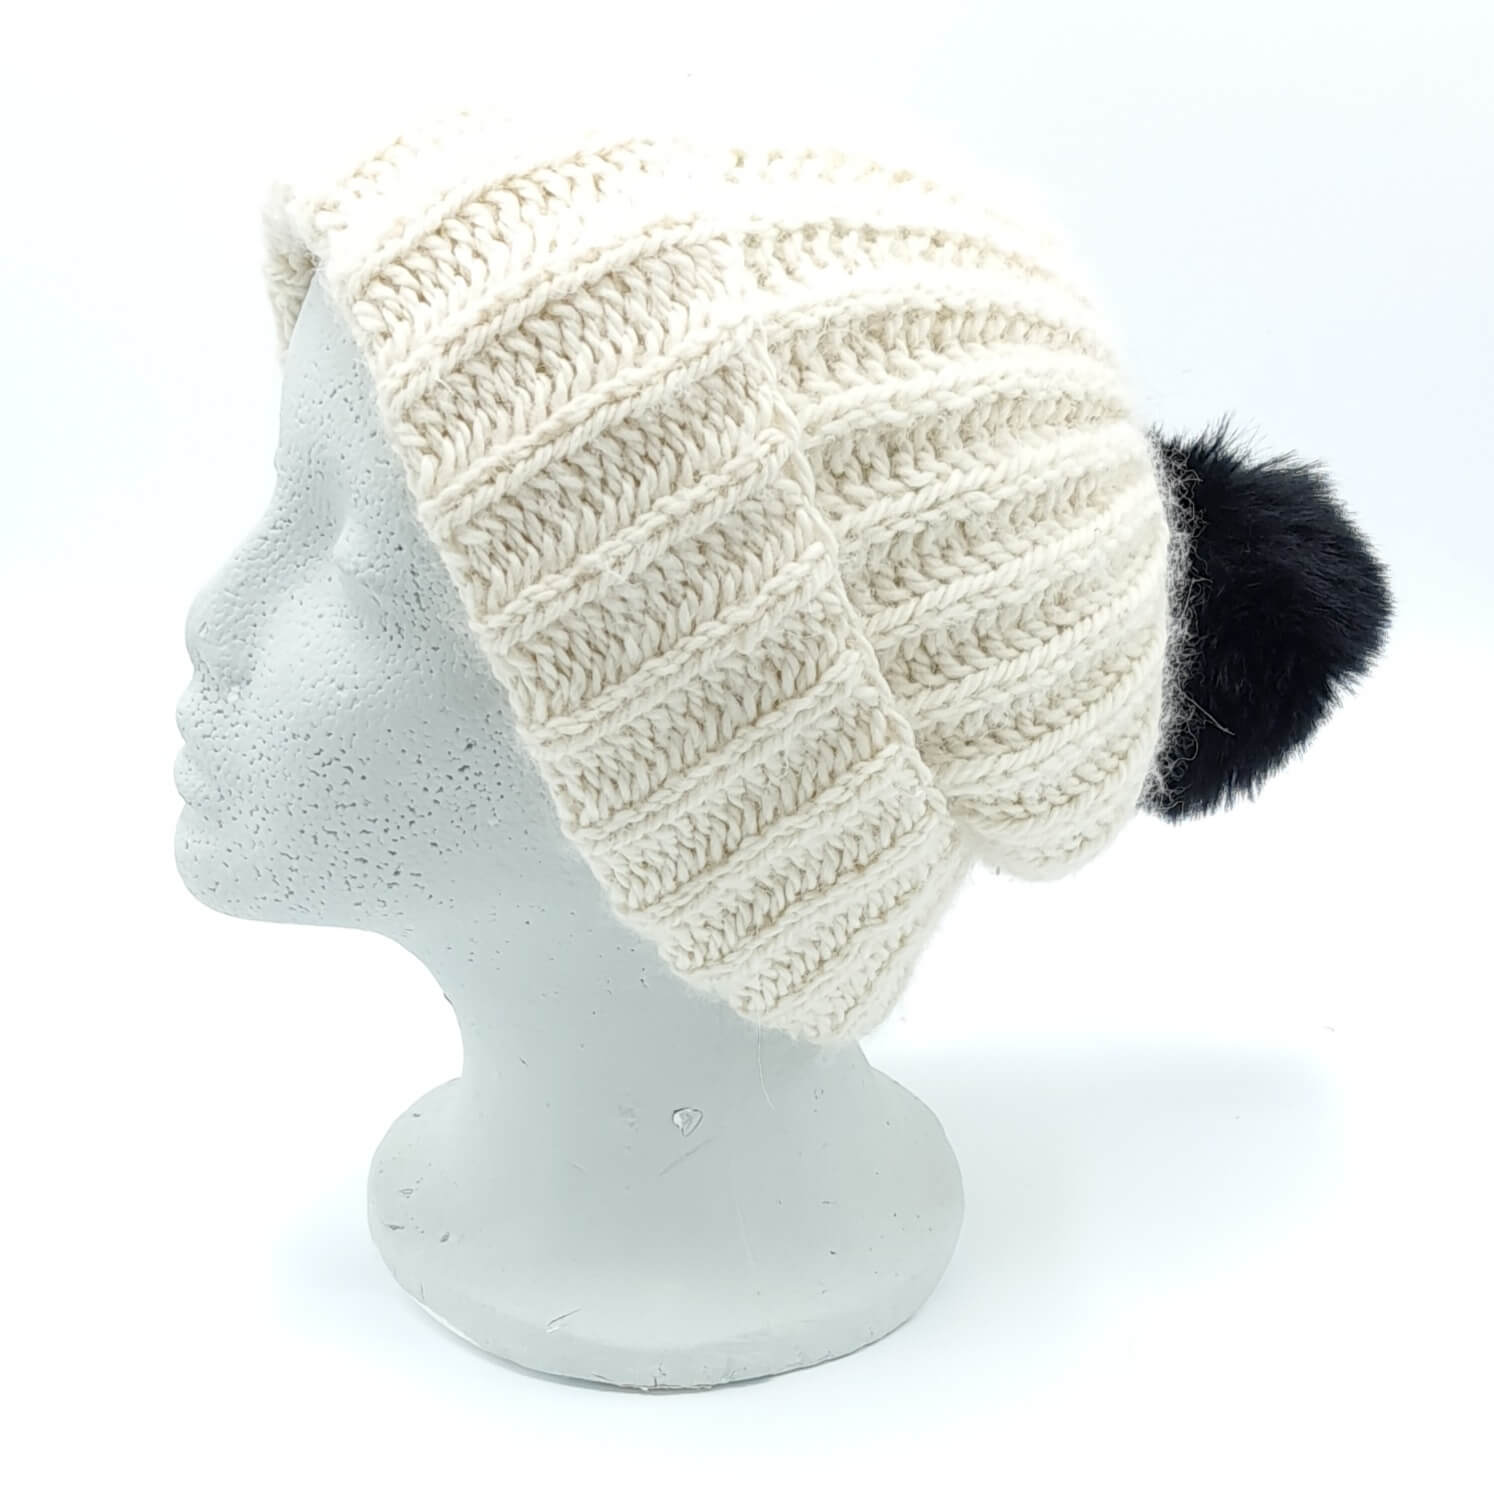 Knit Kit - Aran Fisherman's Rib Hat